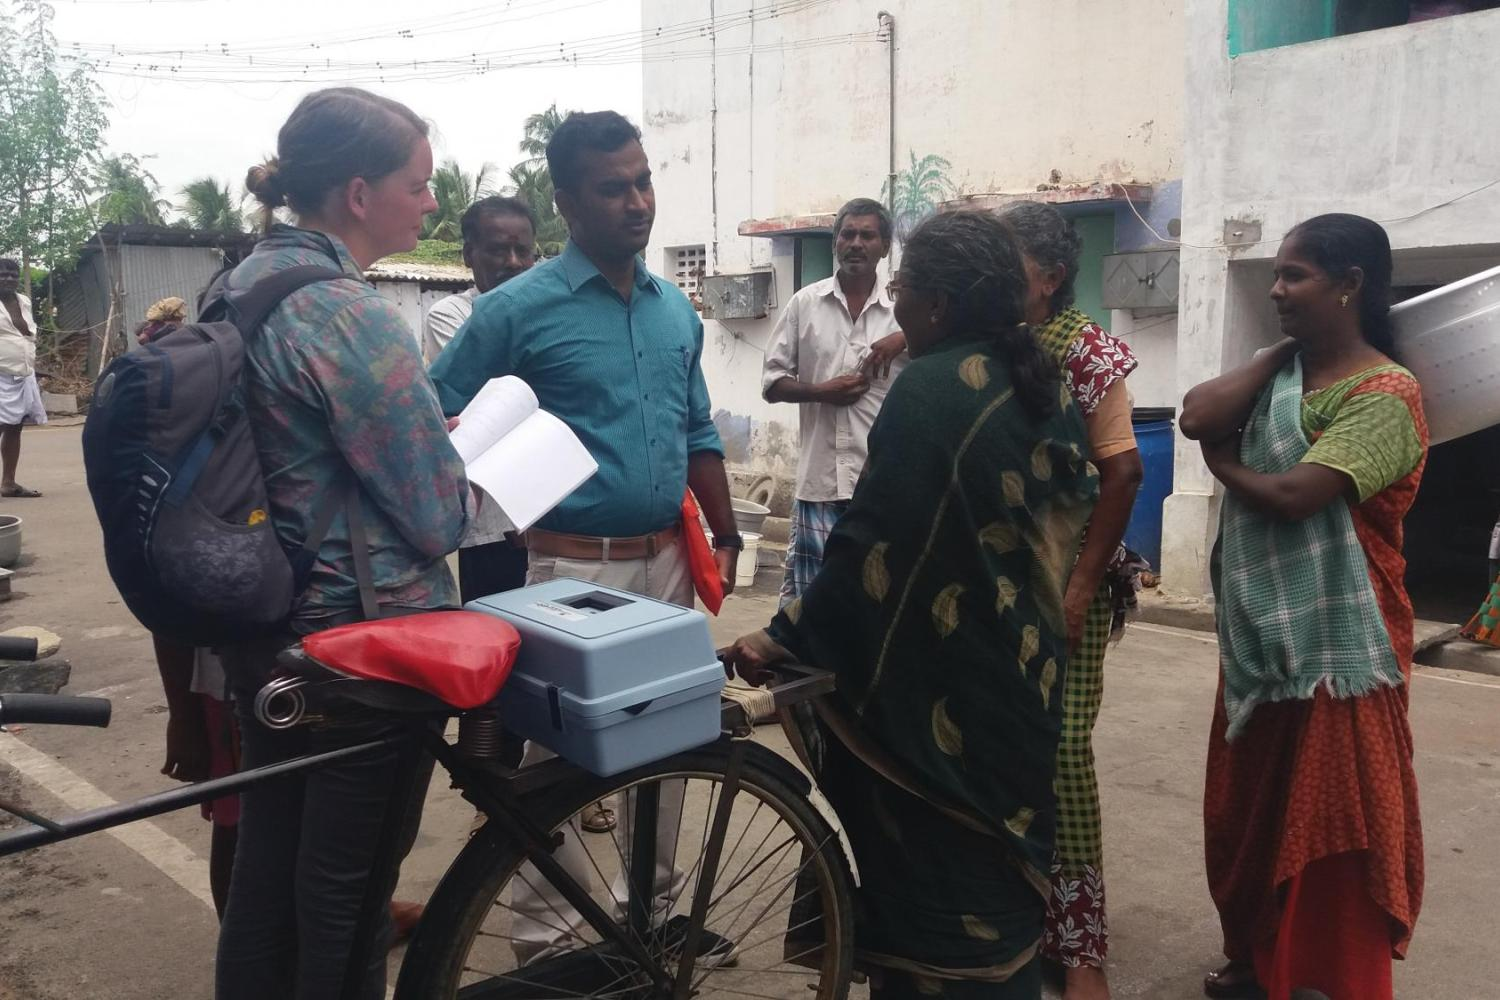 Allison Davis with local townspeople in India.